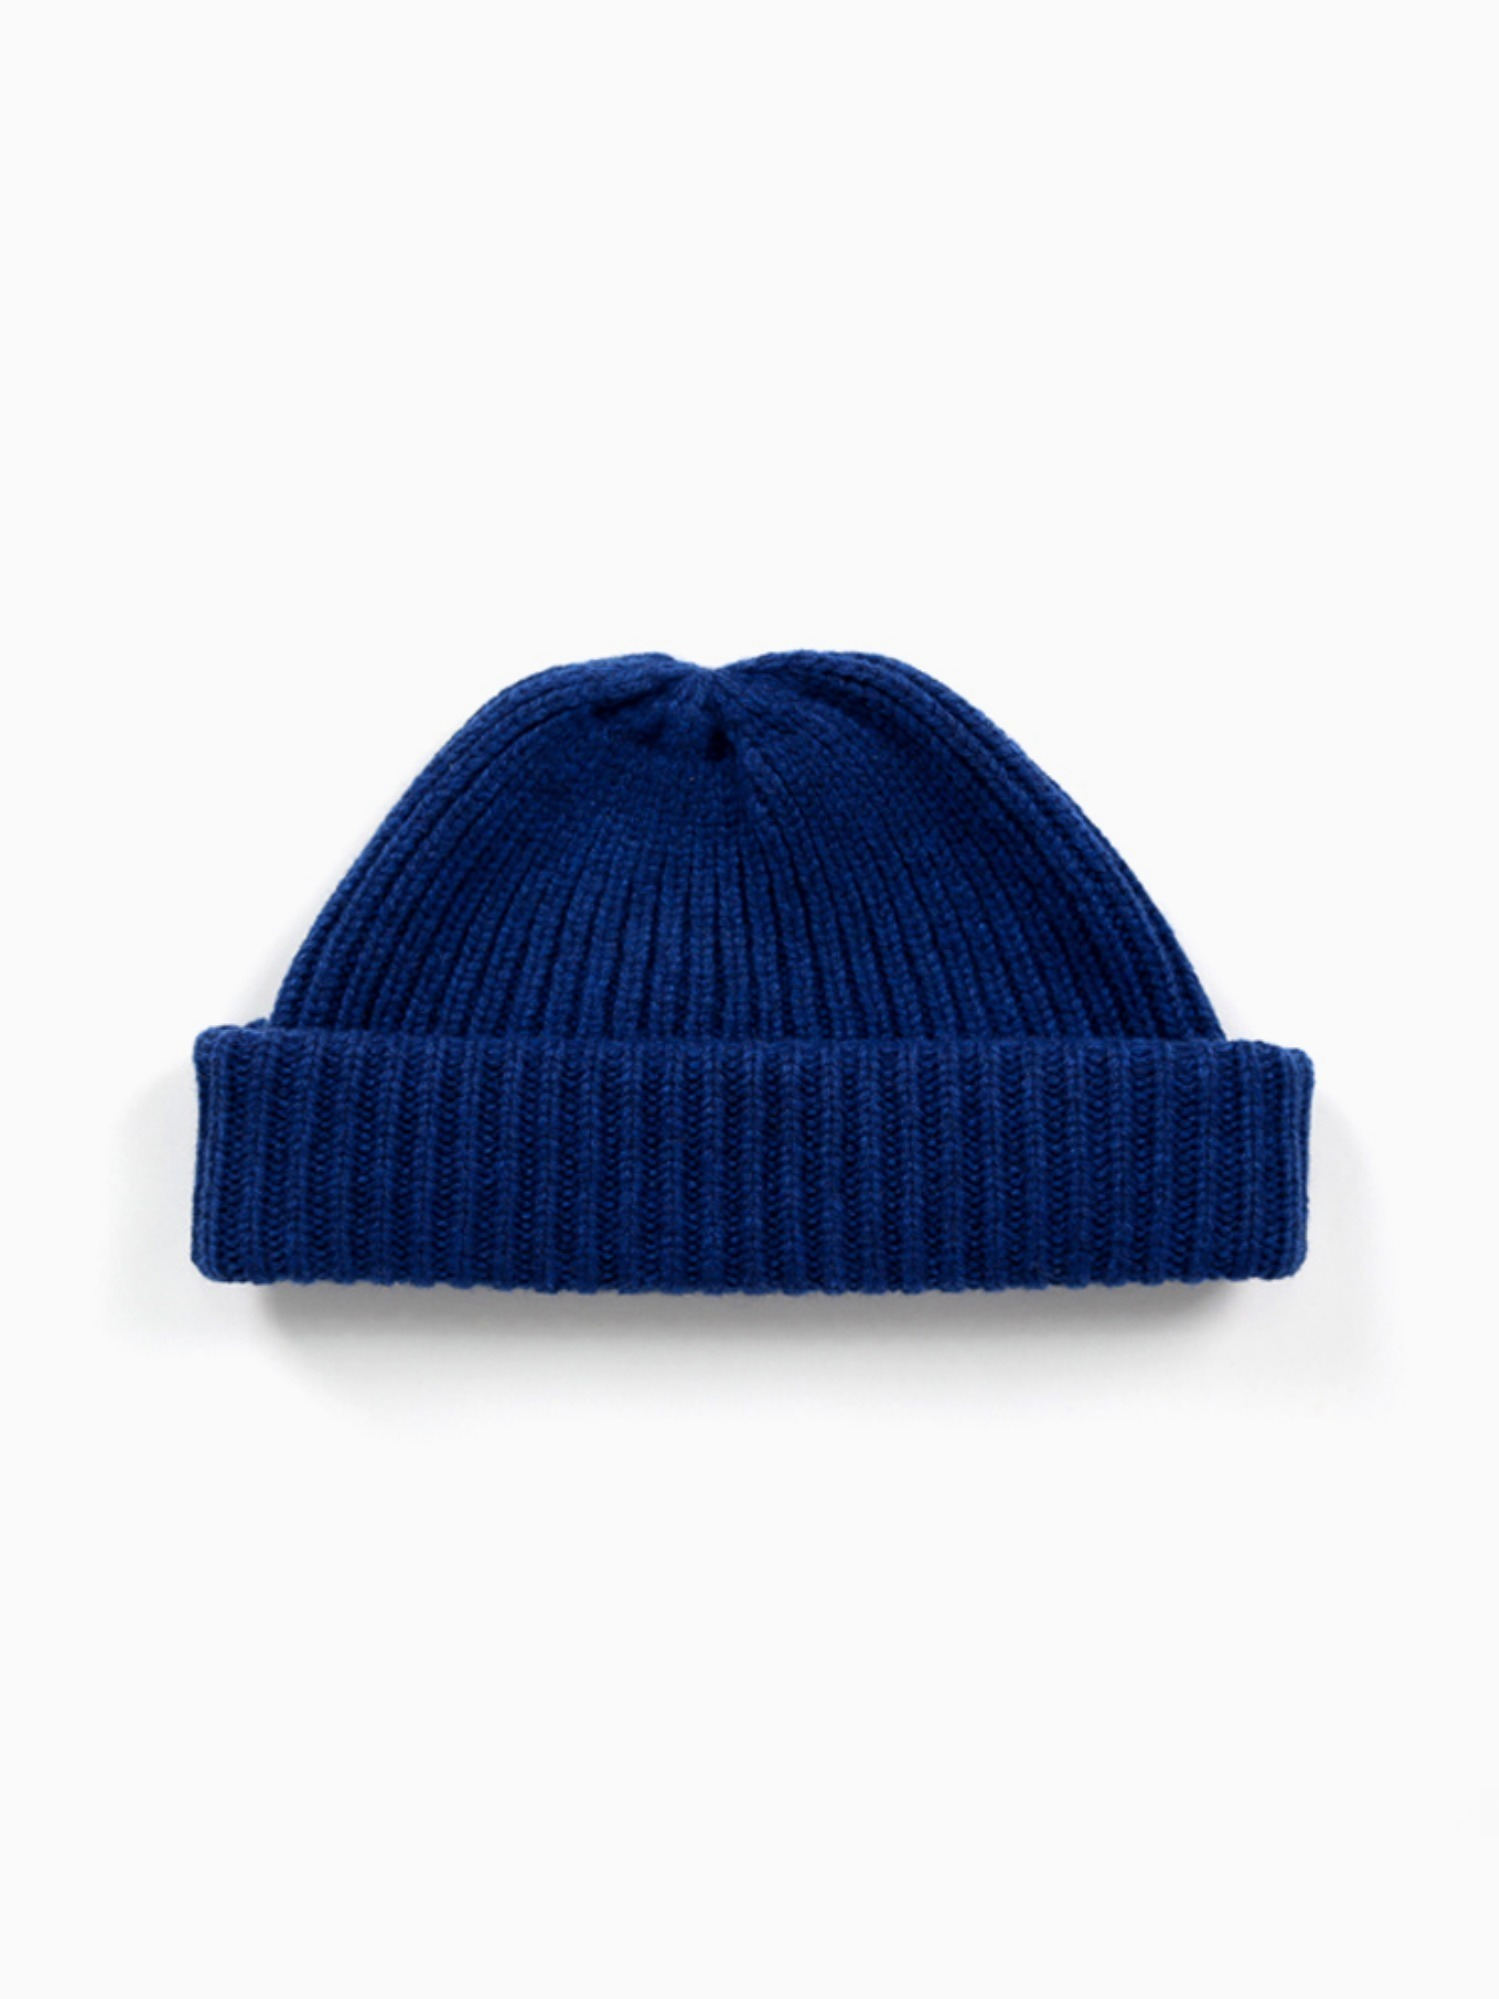 [inch_inch_beanie] 재입고 Lambs-wool deep blue : season2